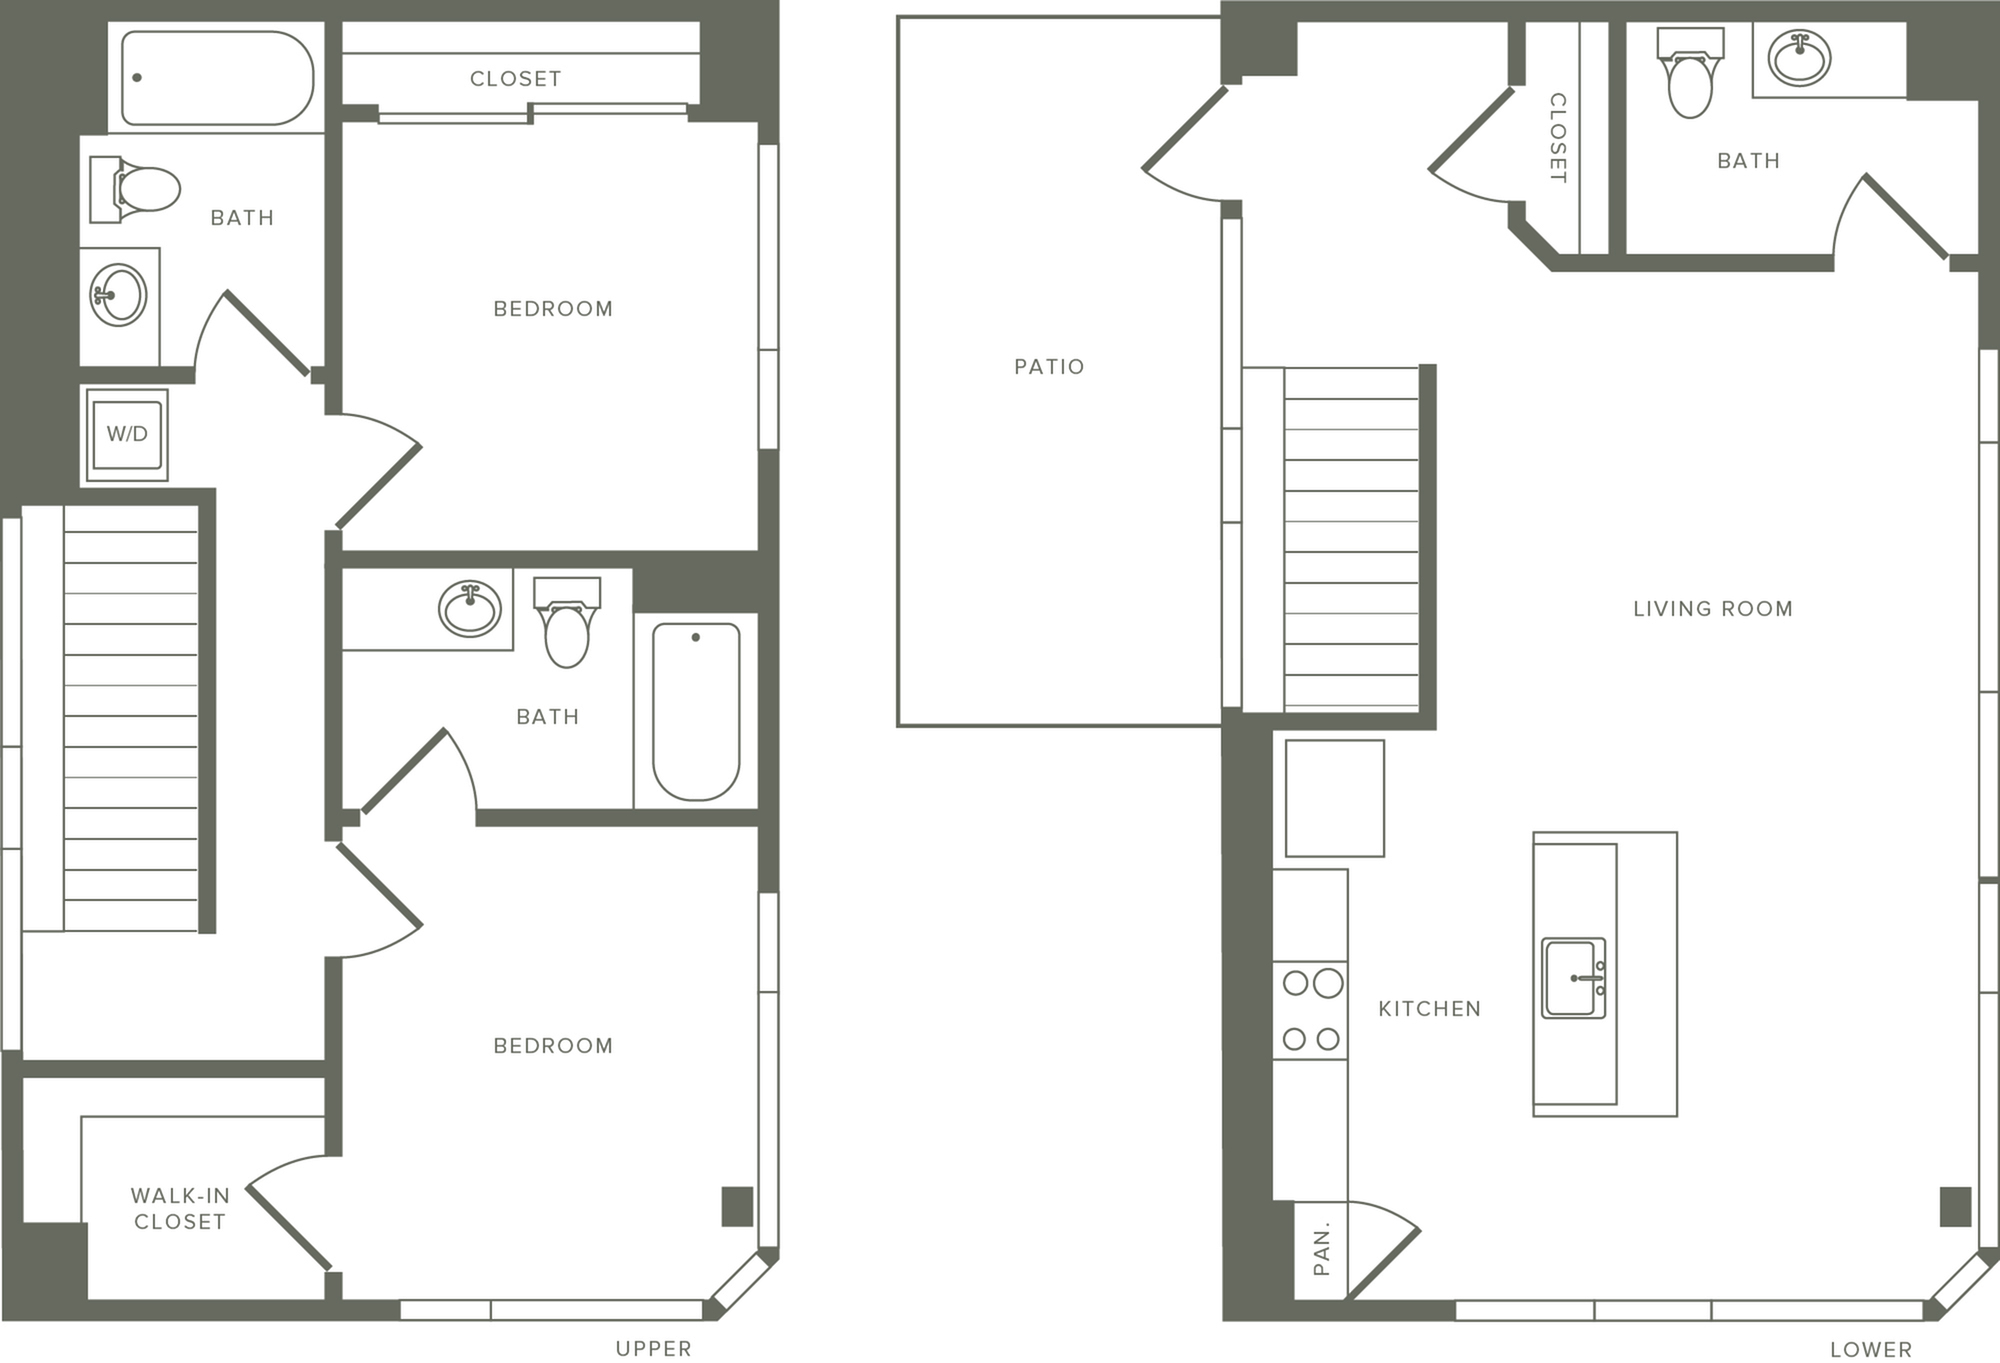 1,254 square foot two bedroom three bath apartment two story penthouse floorplan image